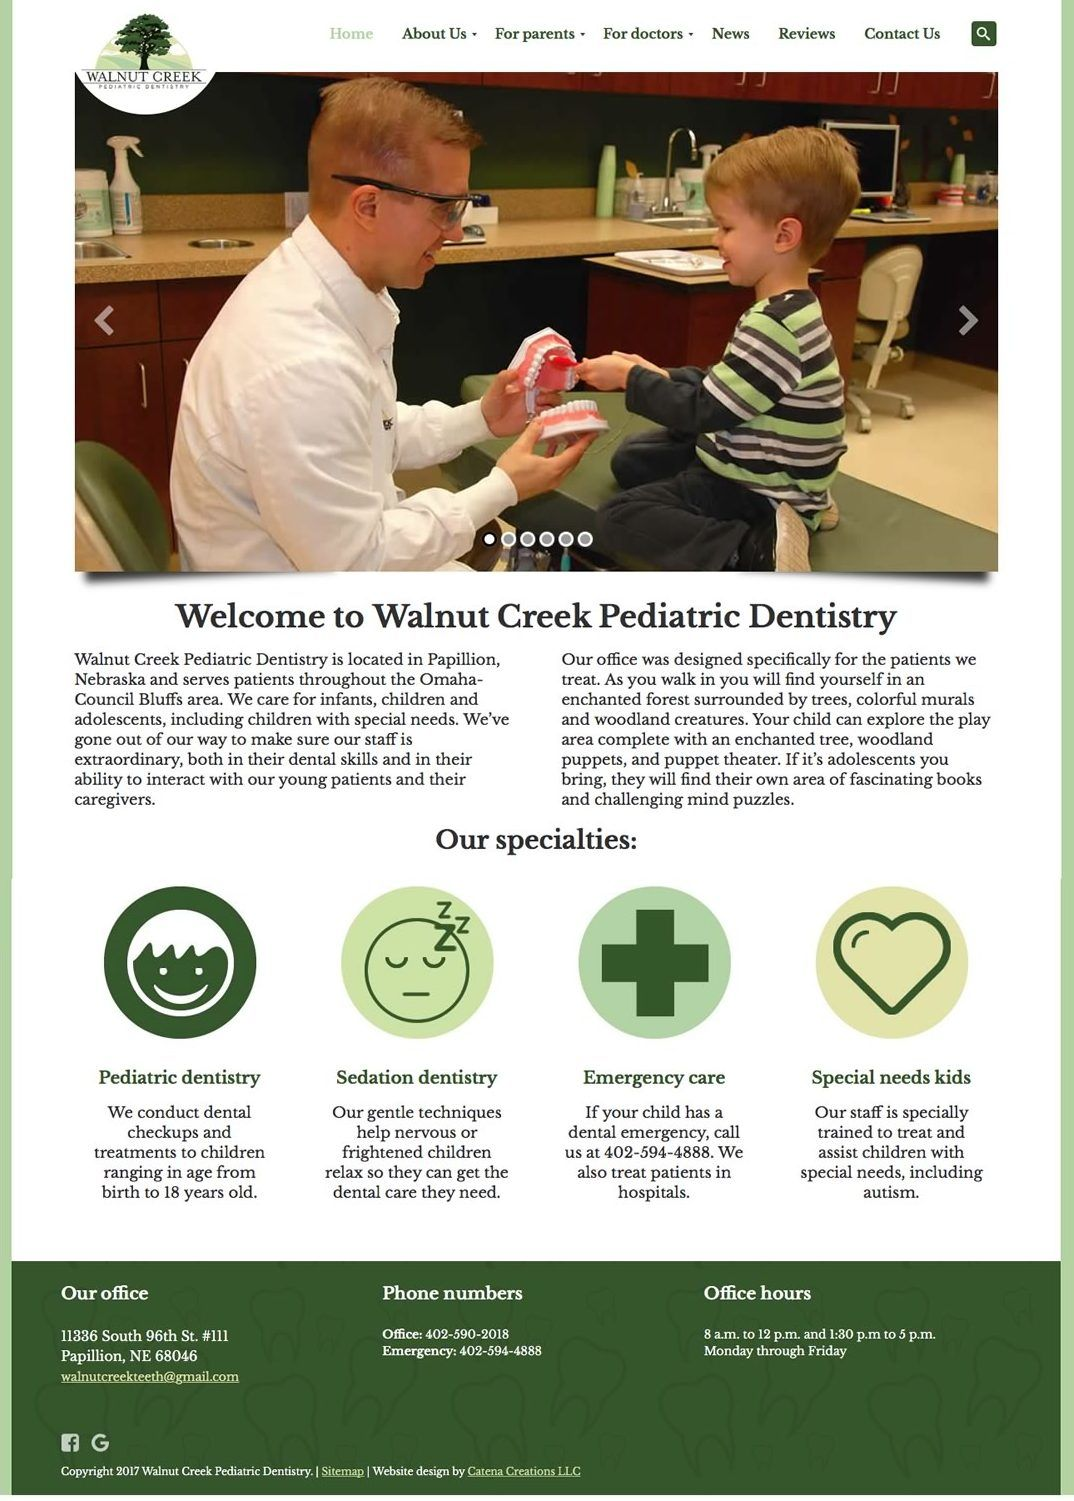 Walnut Creek Pediatric Dentistry